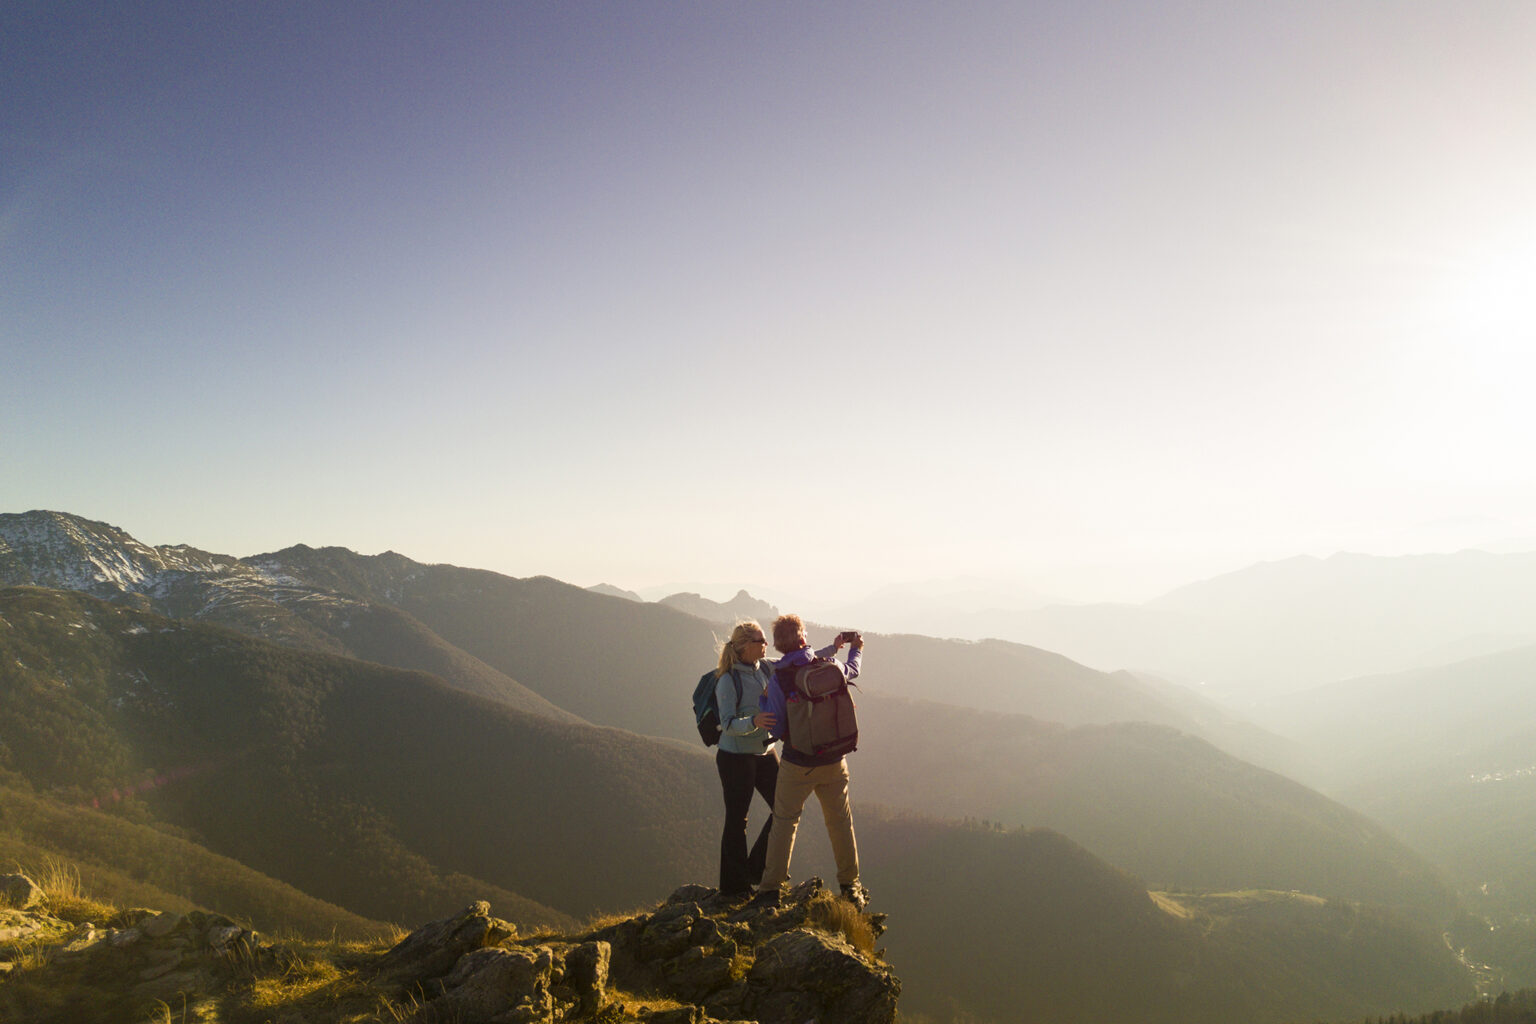 Sustainable Tourism–Or a Selfie? Ecotourism's Fans May Be in It for the 'Gram